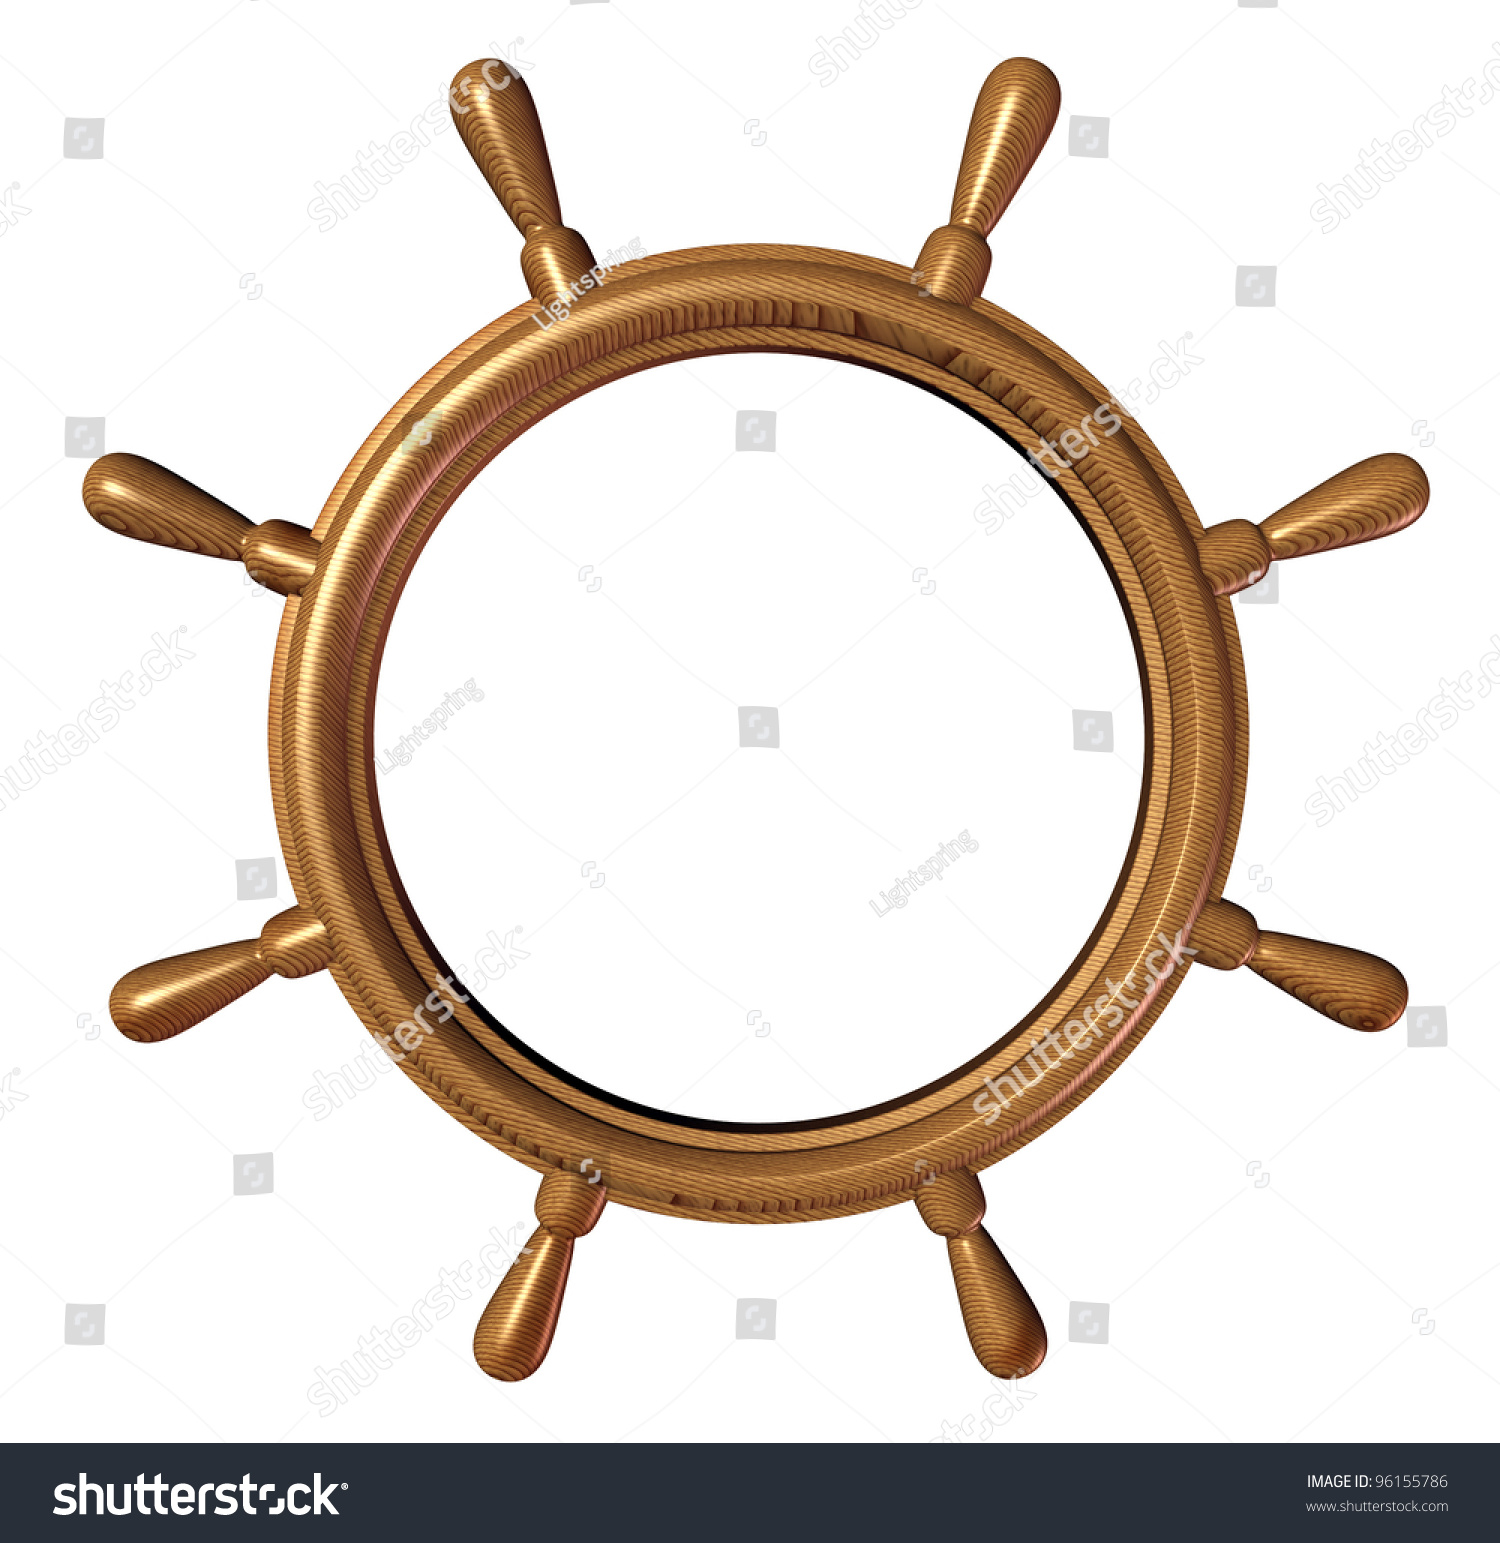 Ship wheel design element with a blank editable center as boat steering and  nautical control symbol